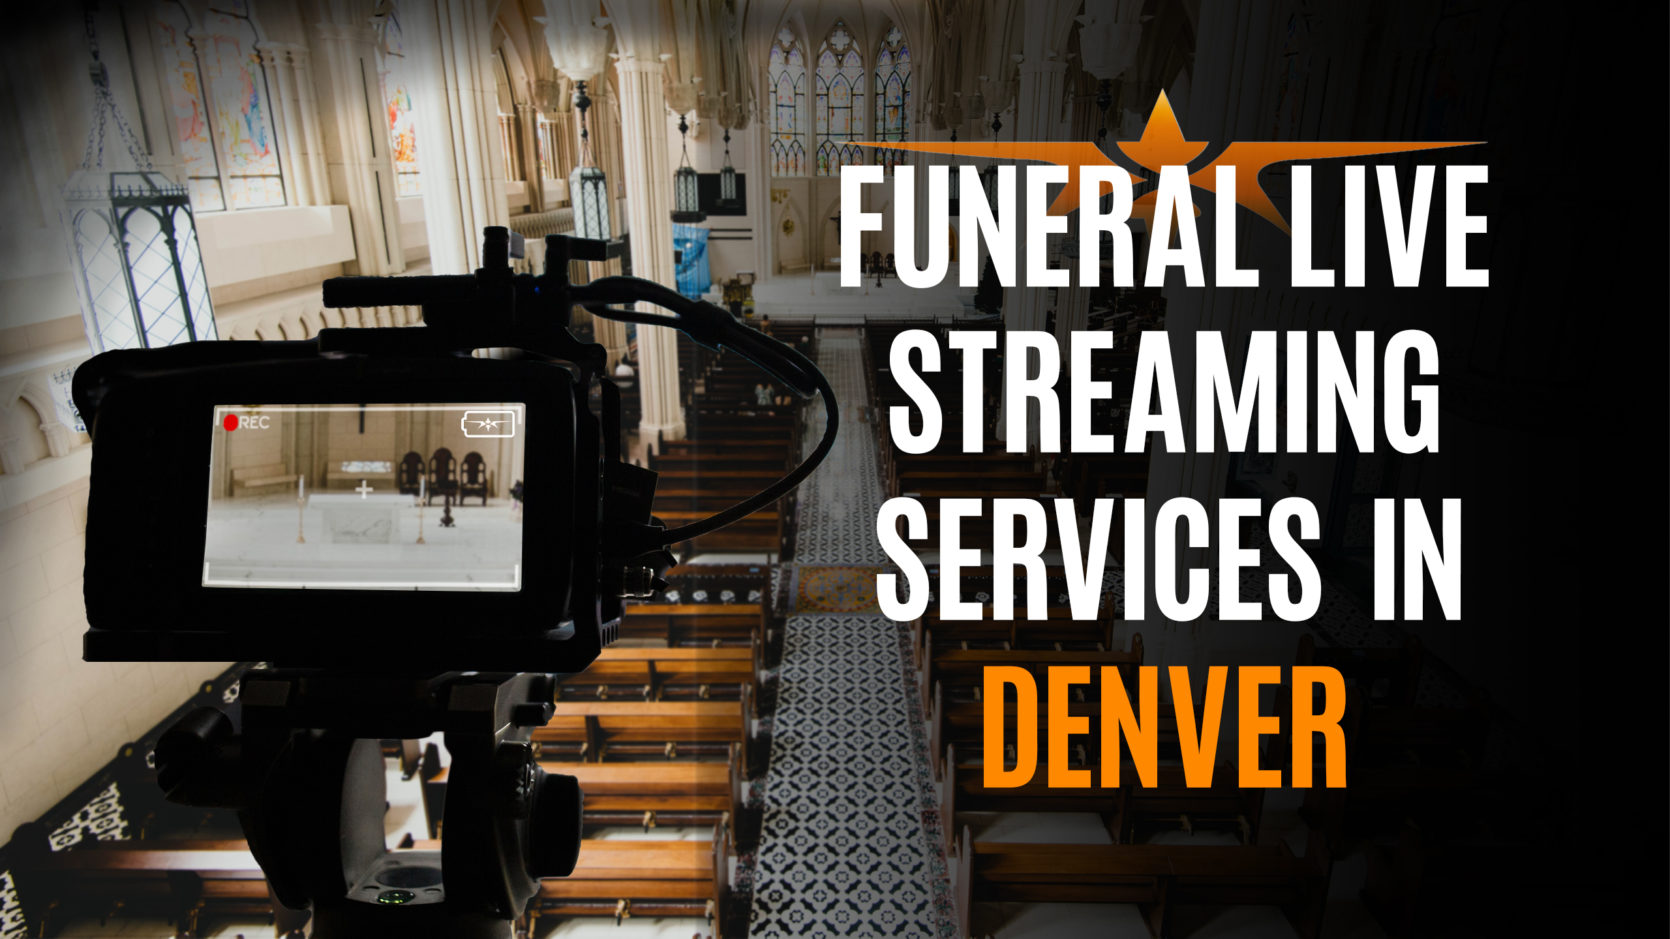 Funeral Live Streaming Services in Denver